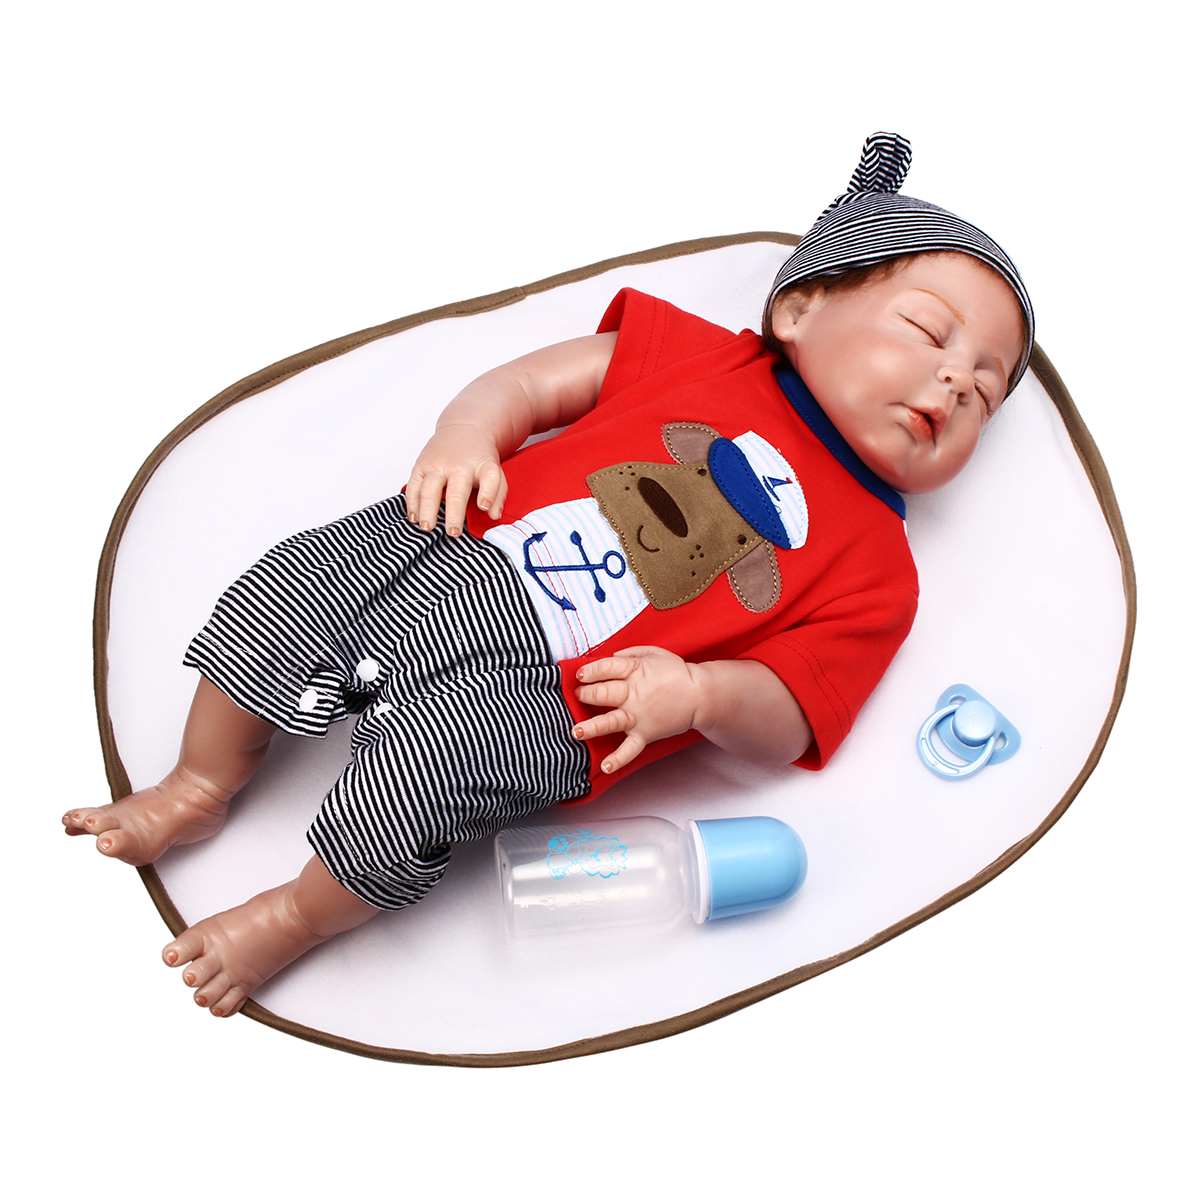 NPK 23 Inch 58cm Reborn Baby Sleeping Soft Silicone Doll Handmade Lifeike Baby Girl Dolls Play House Toys Birthday Gift